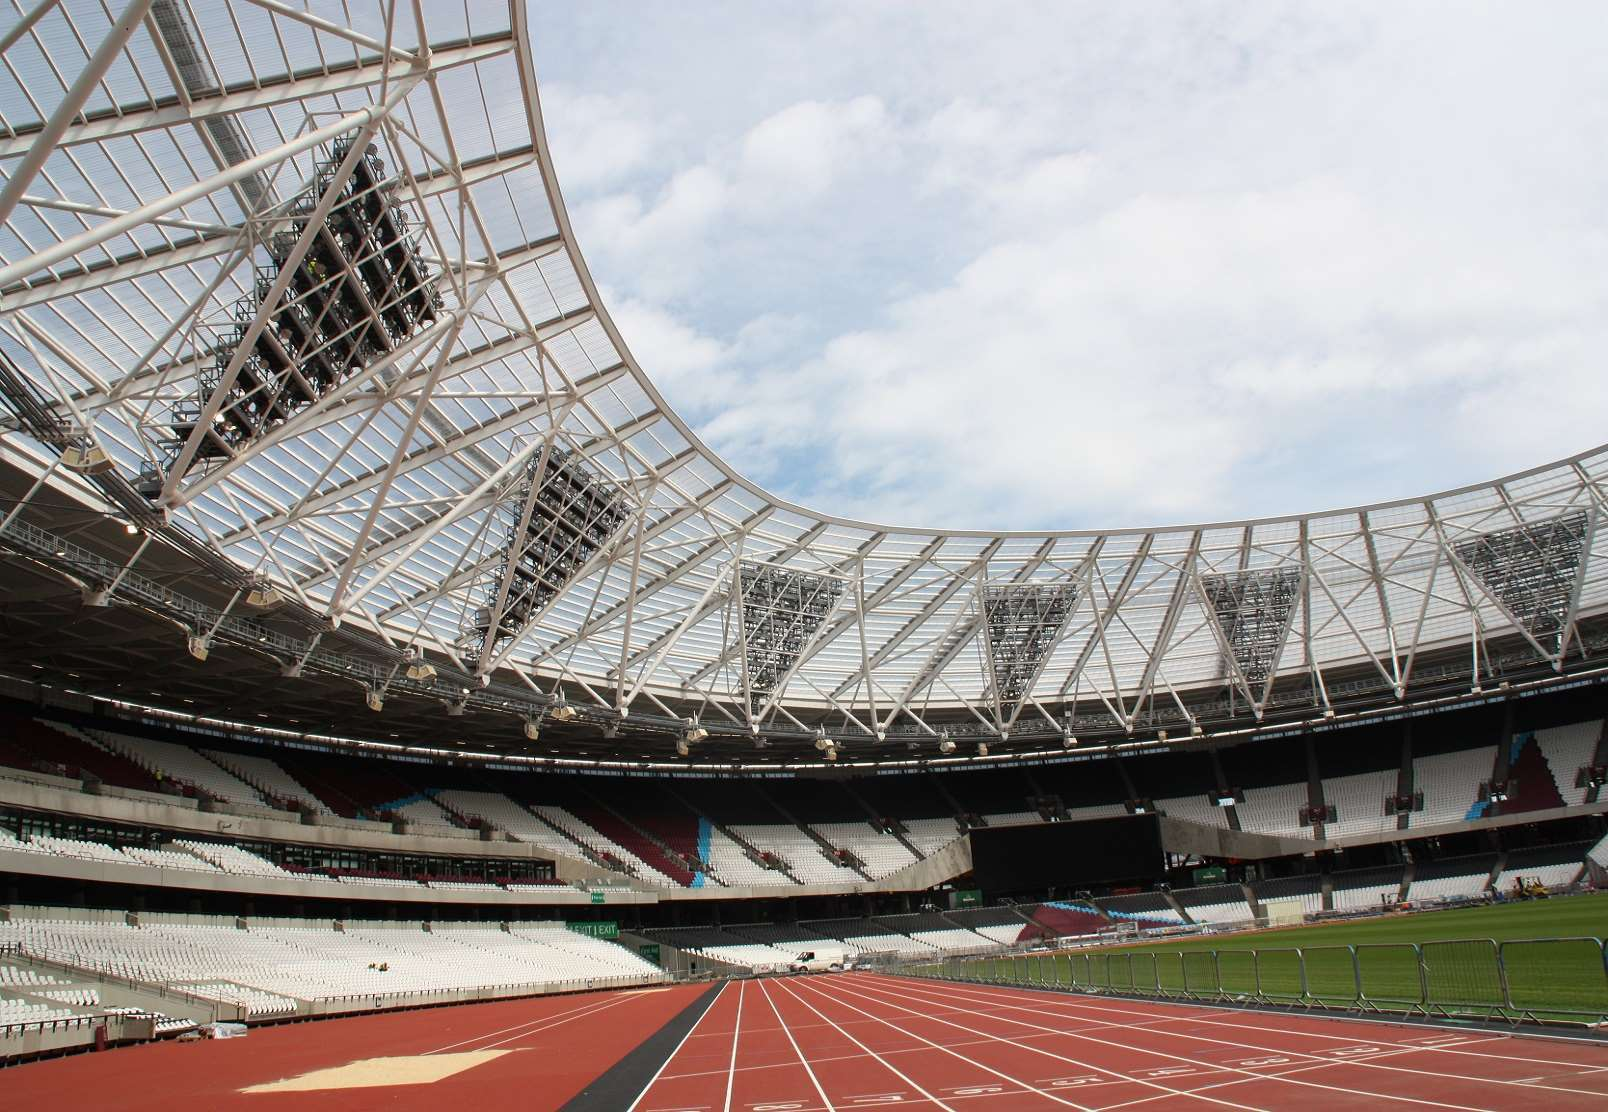 The London Stadium